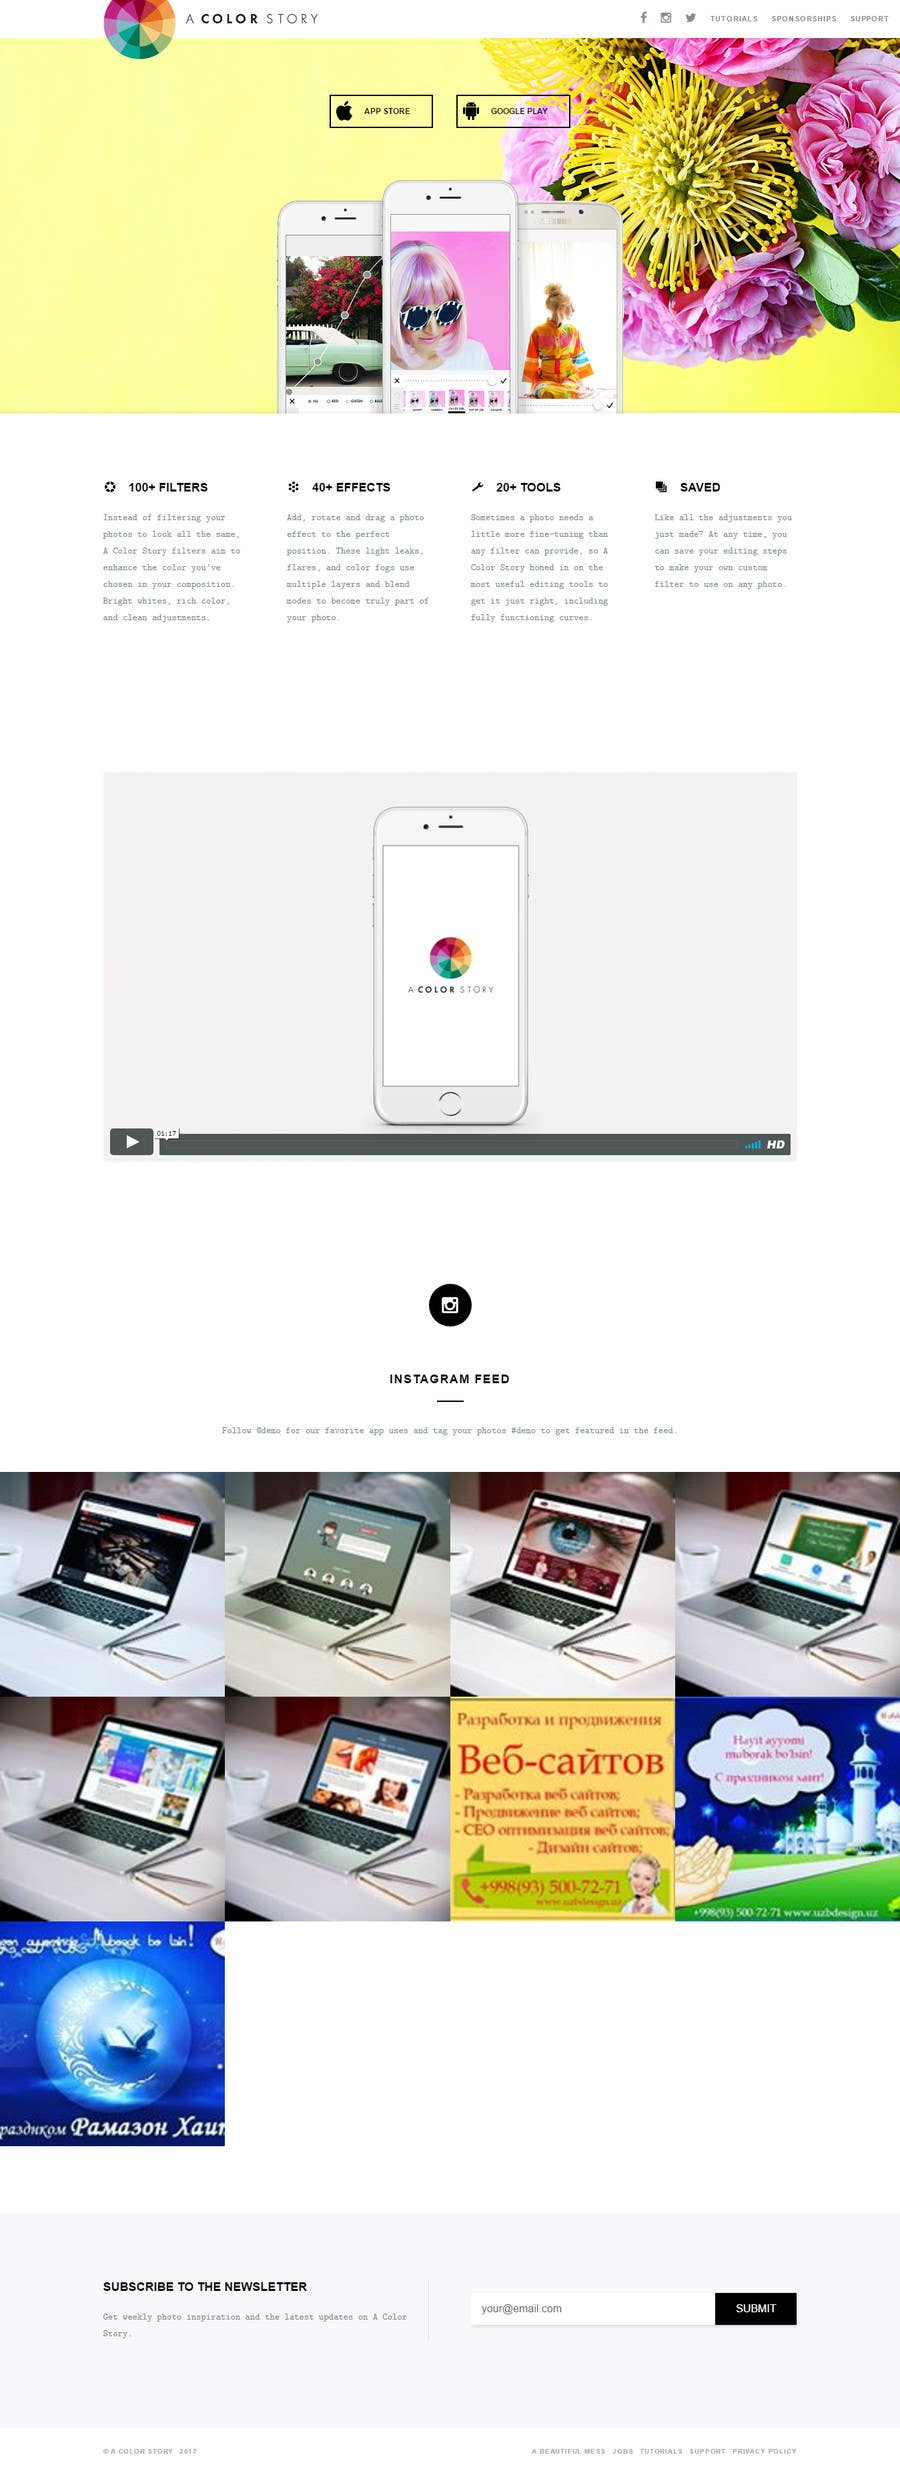 Proposition n°9 du concours 1 page - landing page in html / CSS for a mobile app w/ Instagram feed